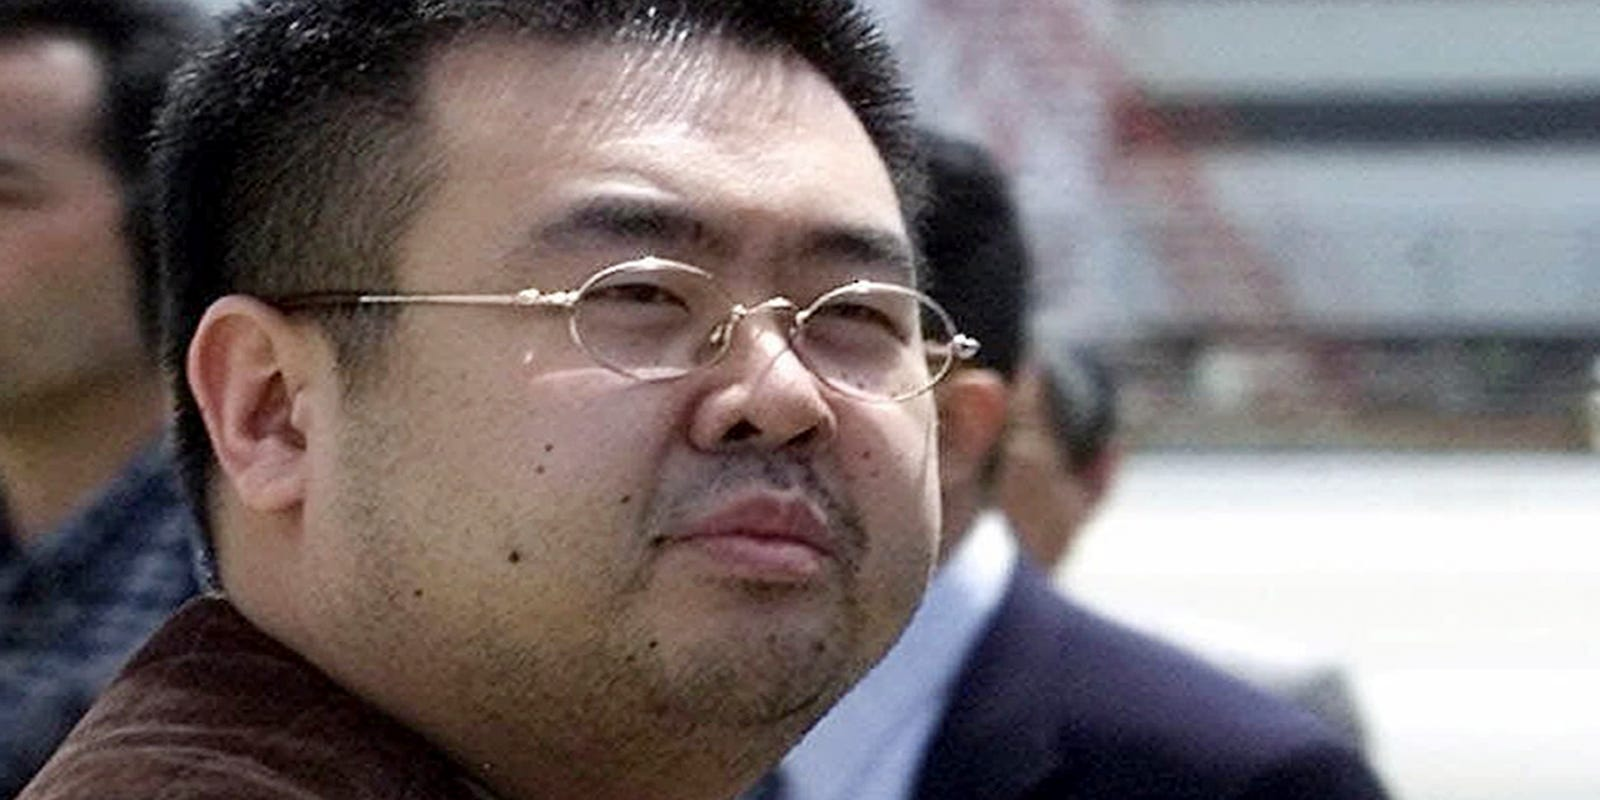 befe4bdfd2e Kim Jong Nam killed with a highly toxic VX nerve agent